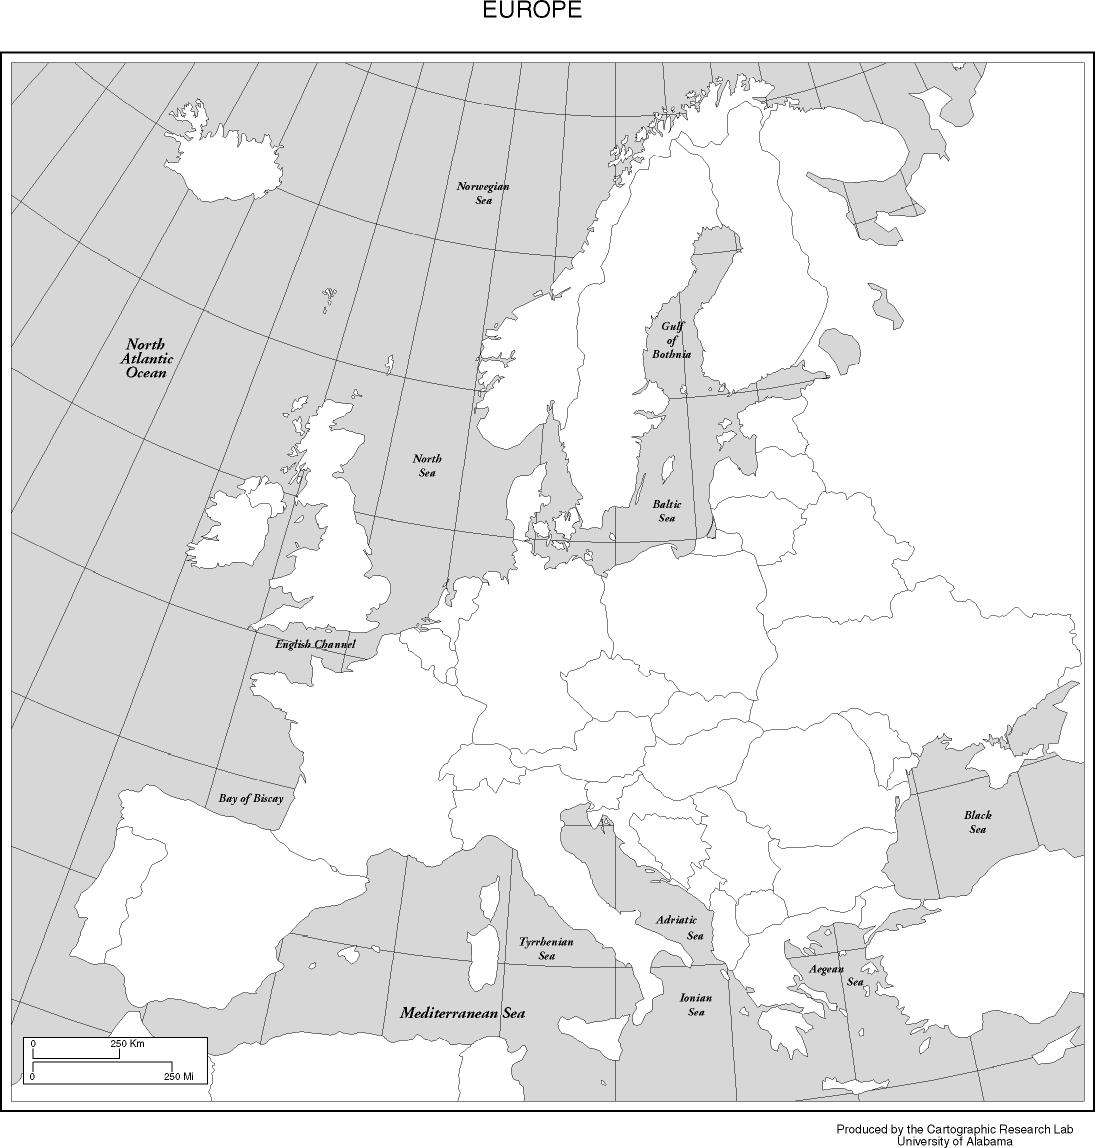 Blank+world+war+2+map+of+europe